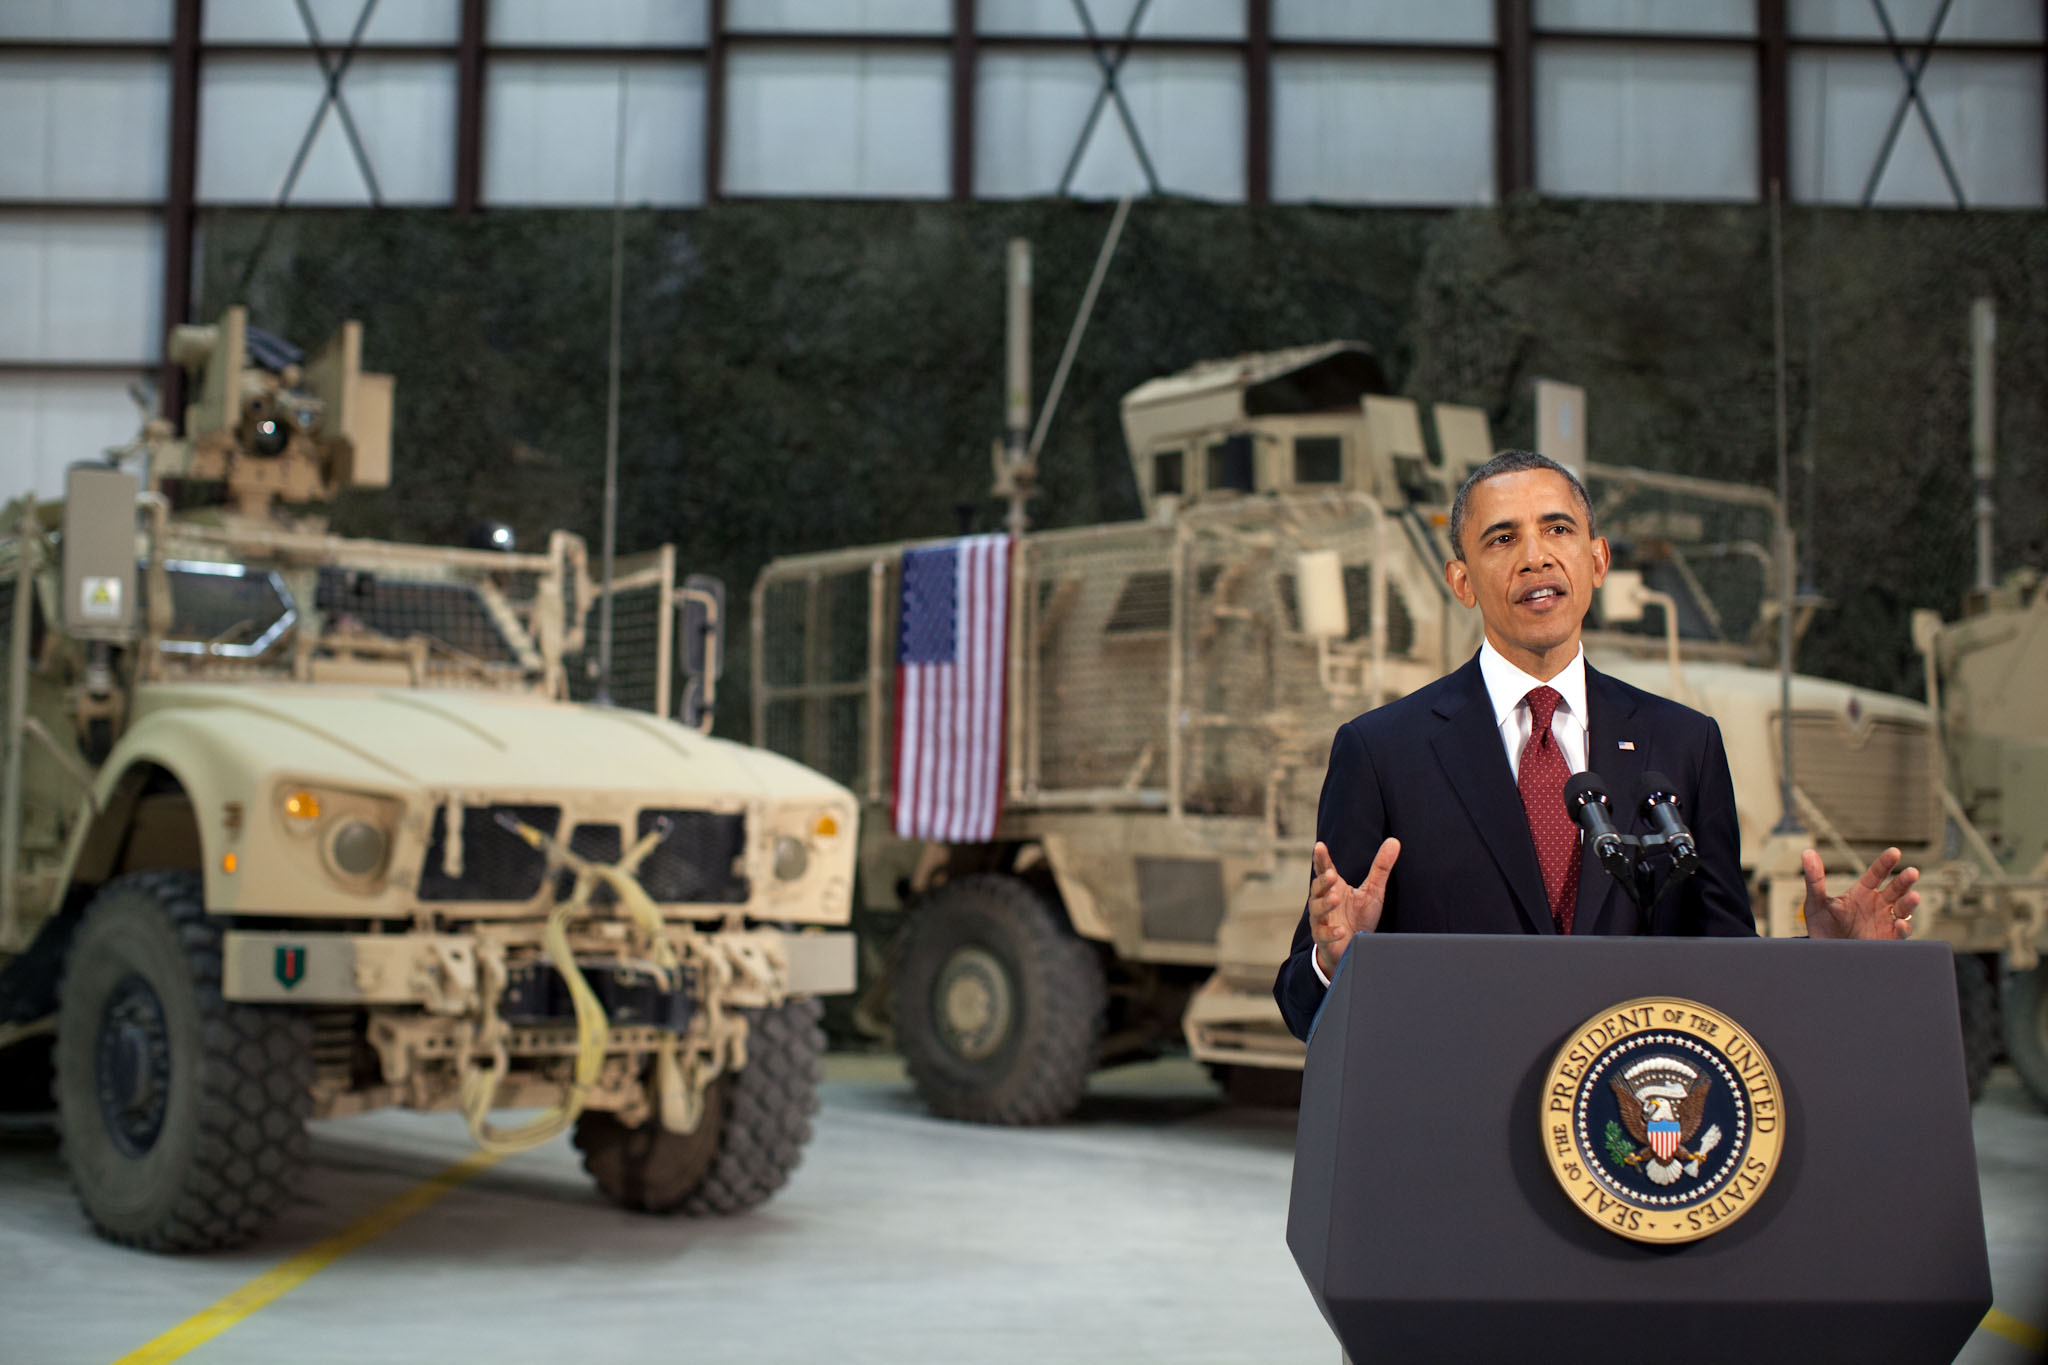 President Barack Obama addresses the nation from Bagram Air Field, Afghanistan (May 1, 2012)